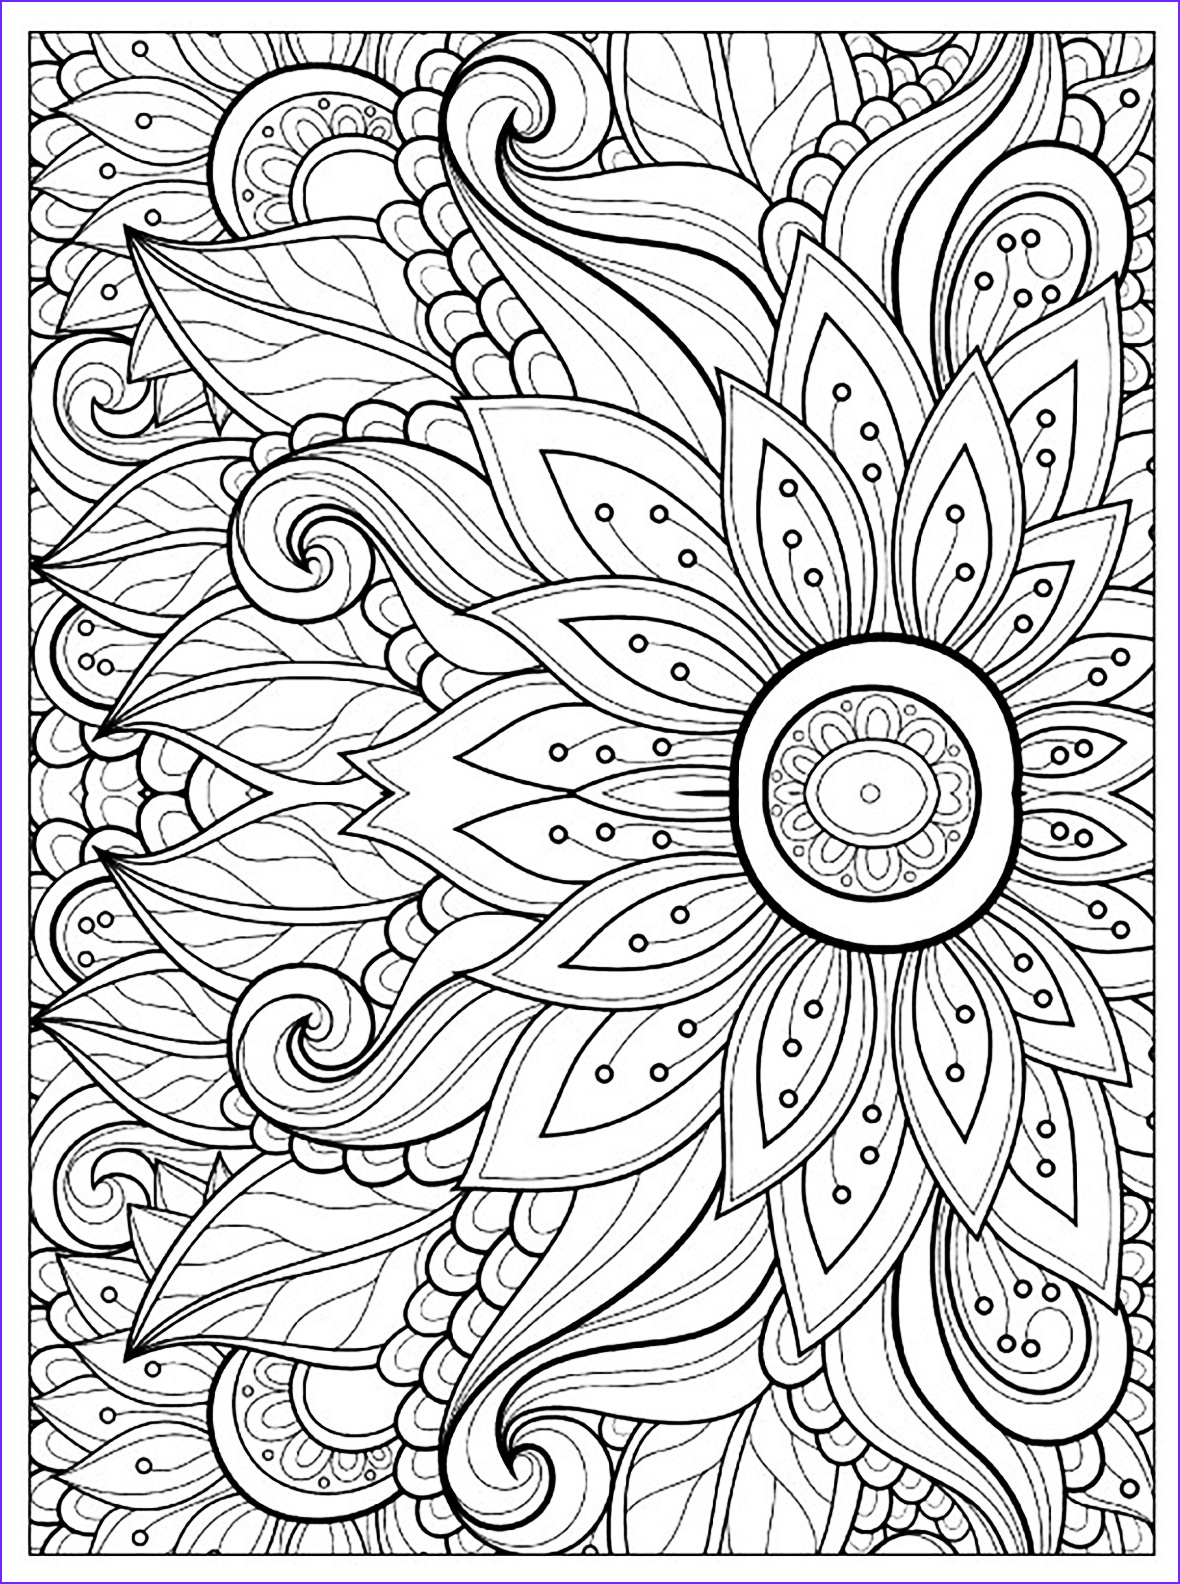 Flower Coloring Pages for Adults Inspirational Photos Flower with Many Petals Flowers Adult Coloring Pages